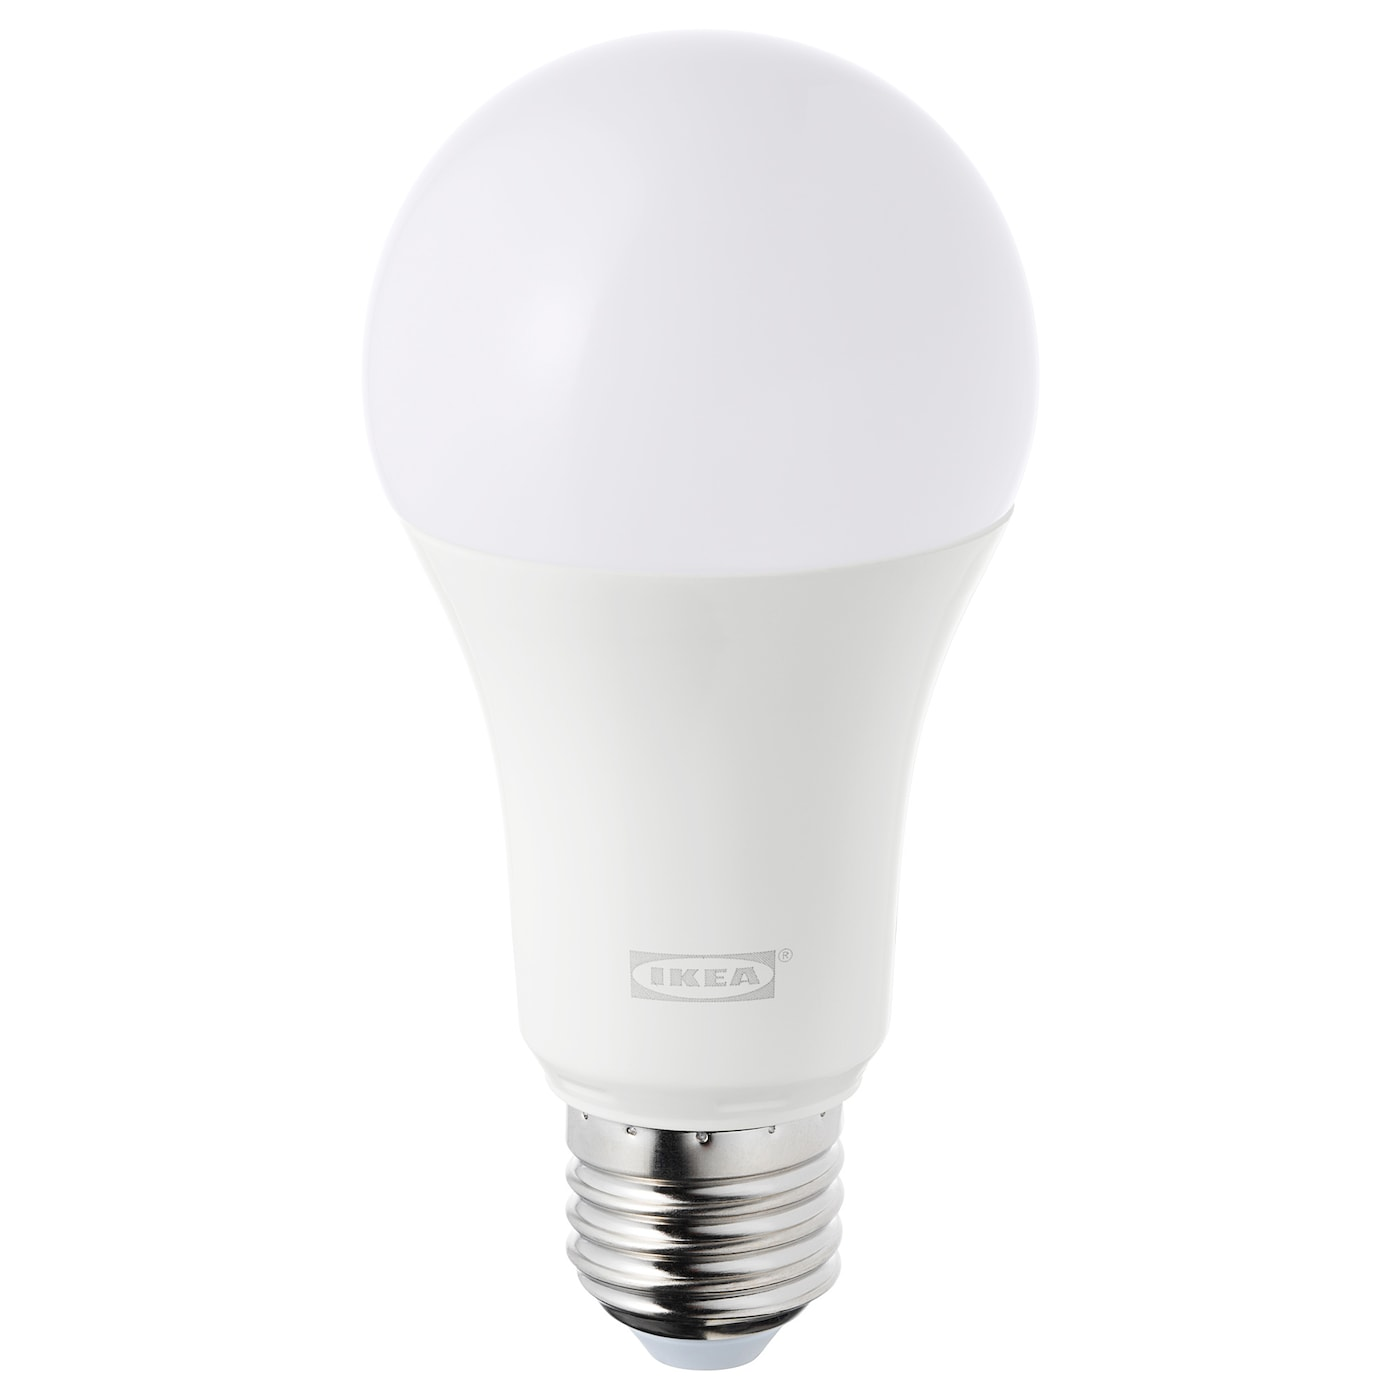 Smart Lighting Wireless Remote Control Ikea All Electrical Appliances Including Light Bulbs Stereos And Trdfri Led Bulb E27 980 Lumen